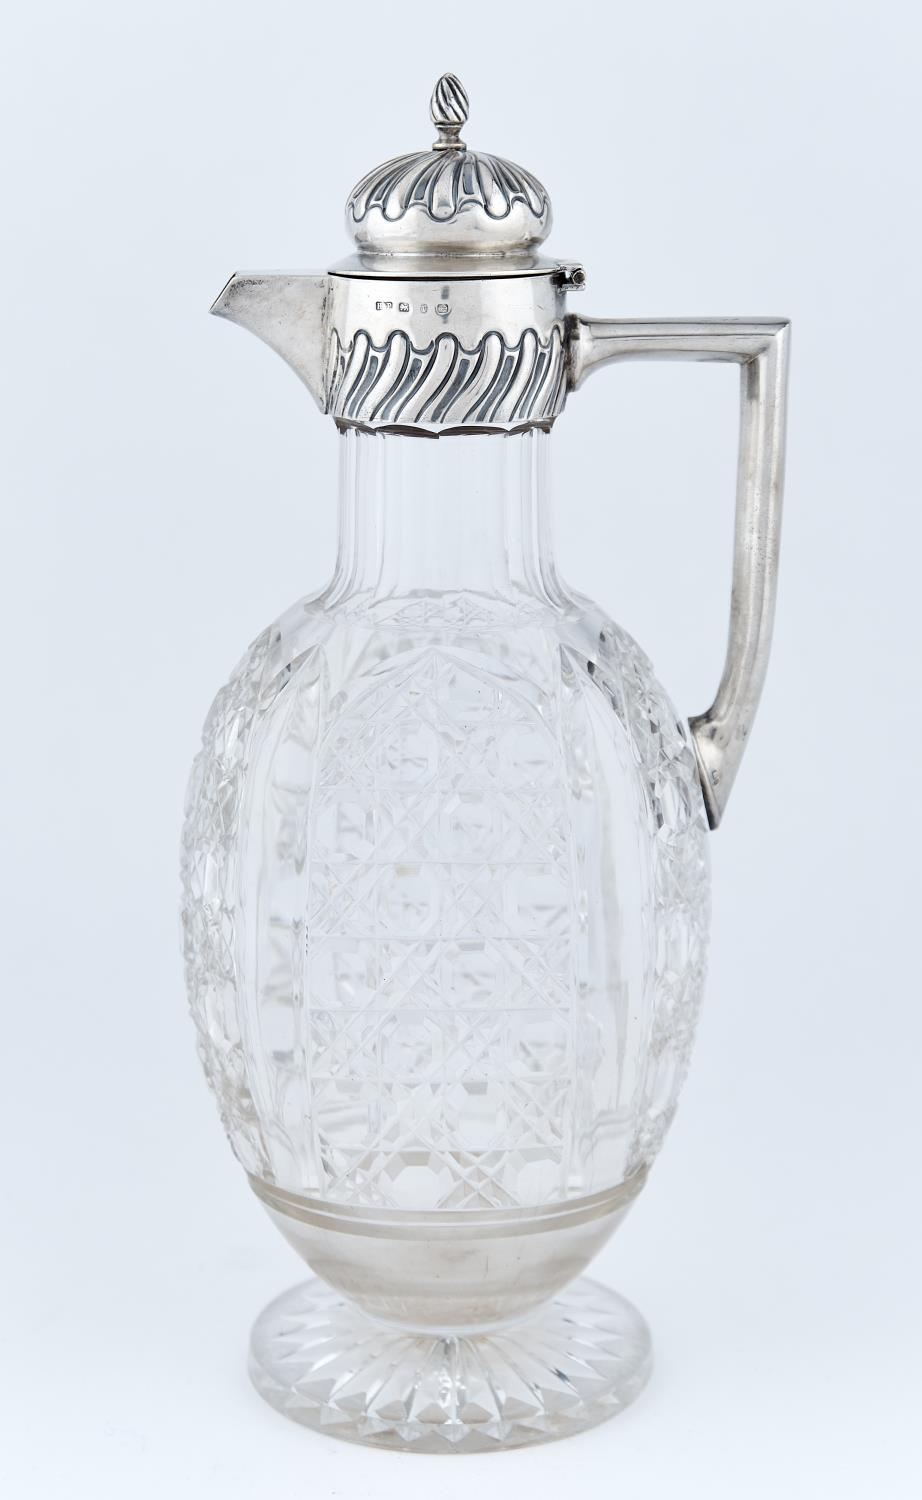 A VICTORIAN SILVER MOUNTED CUT GLASS CLARET JUG, WITH WRYTHEN FLUTED BIRD'S KNOP, BUN LID AND